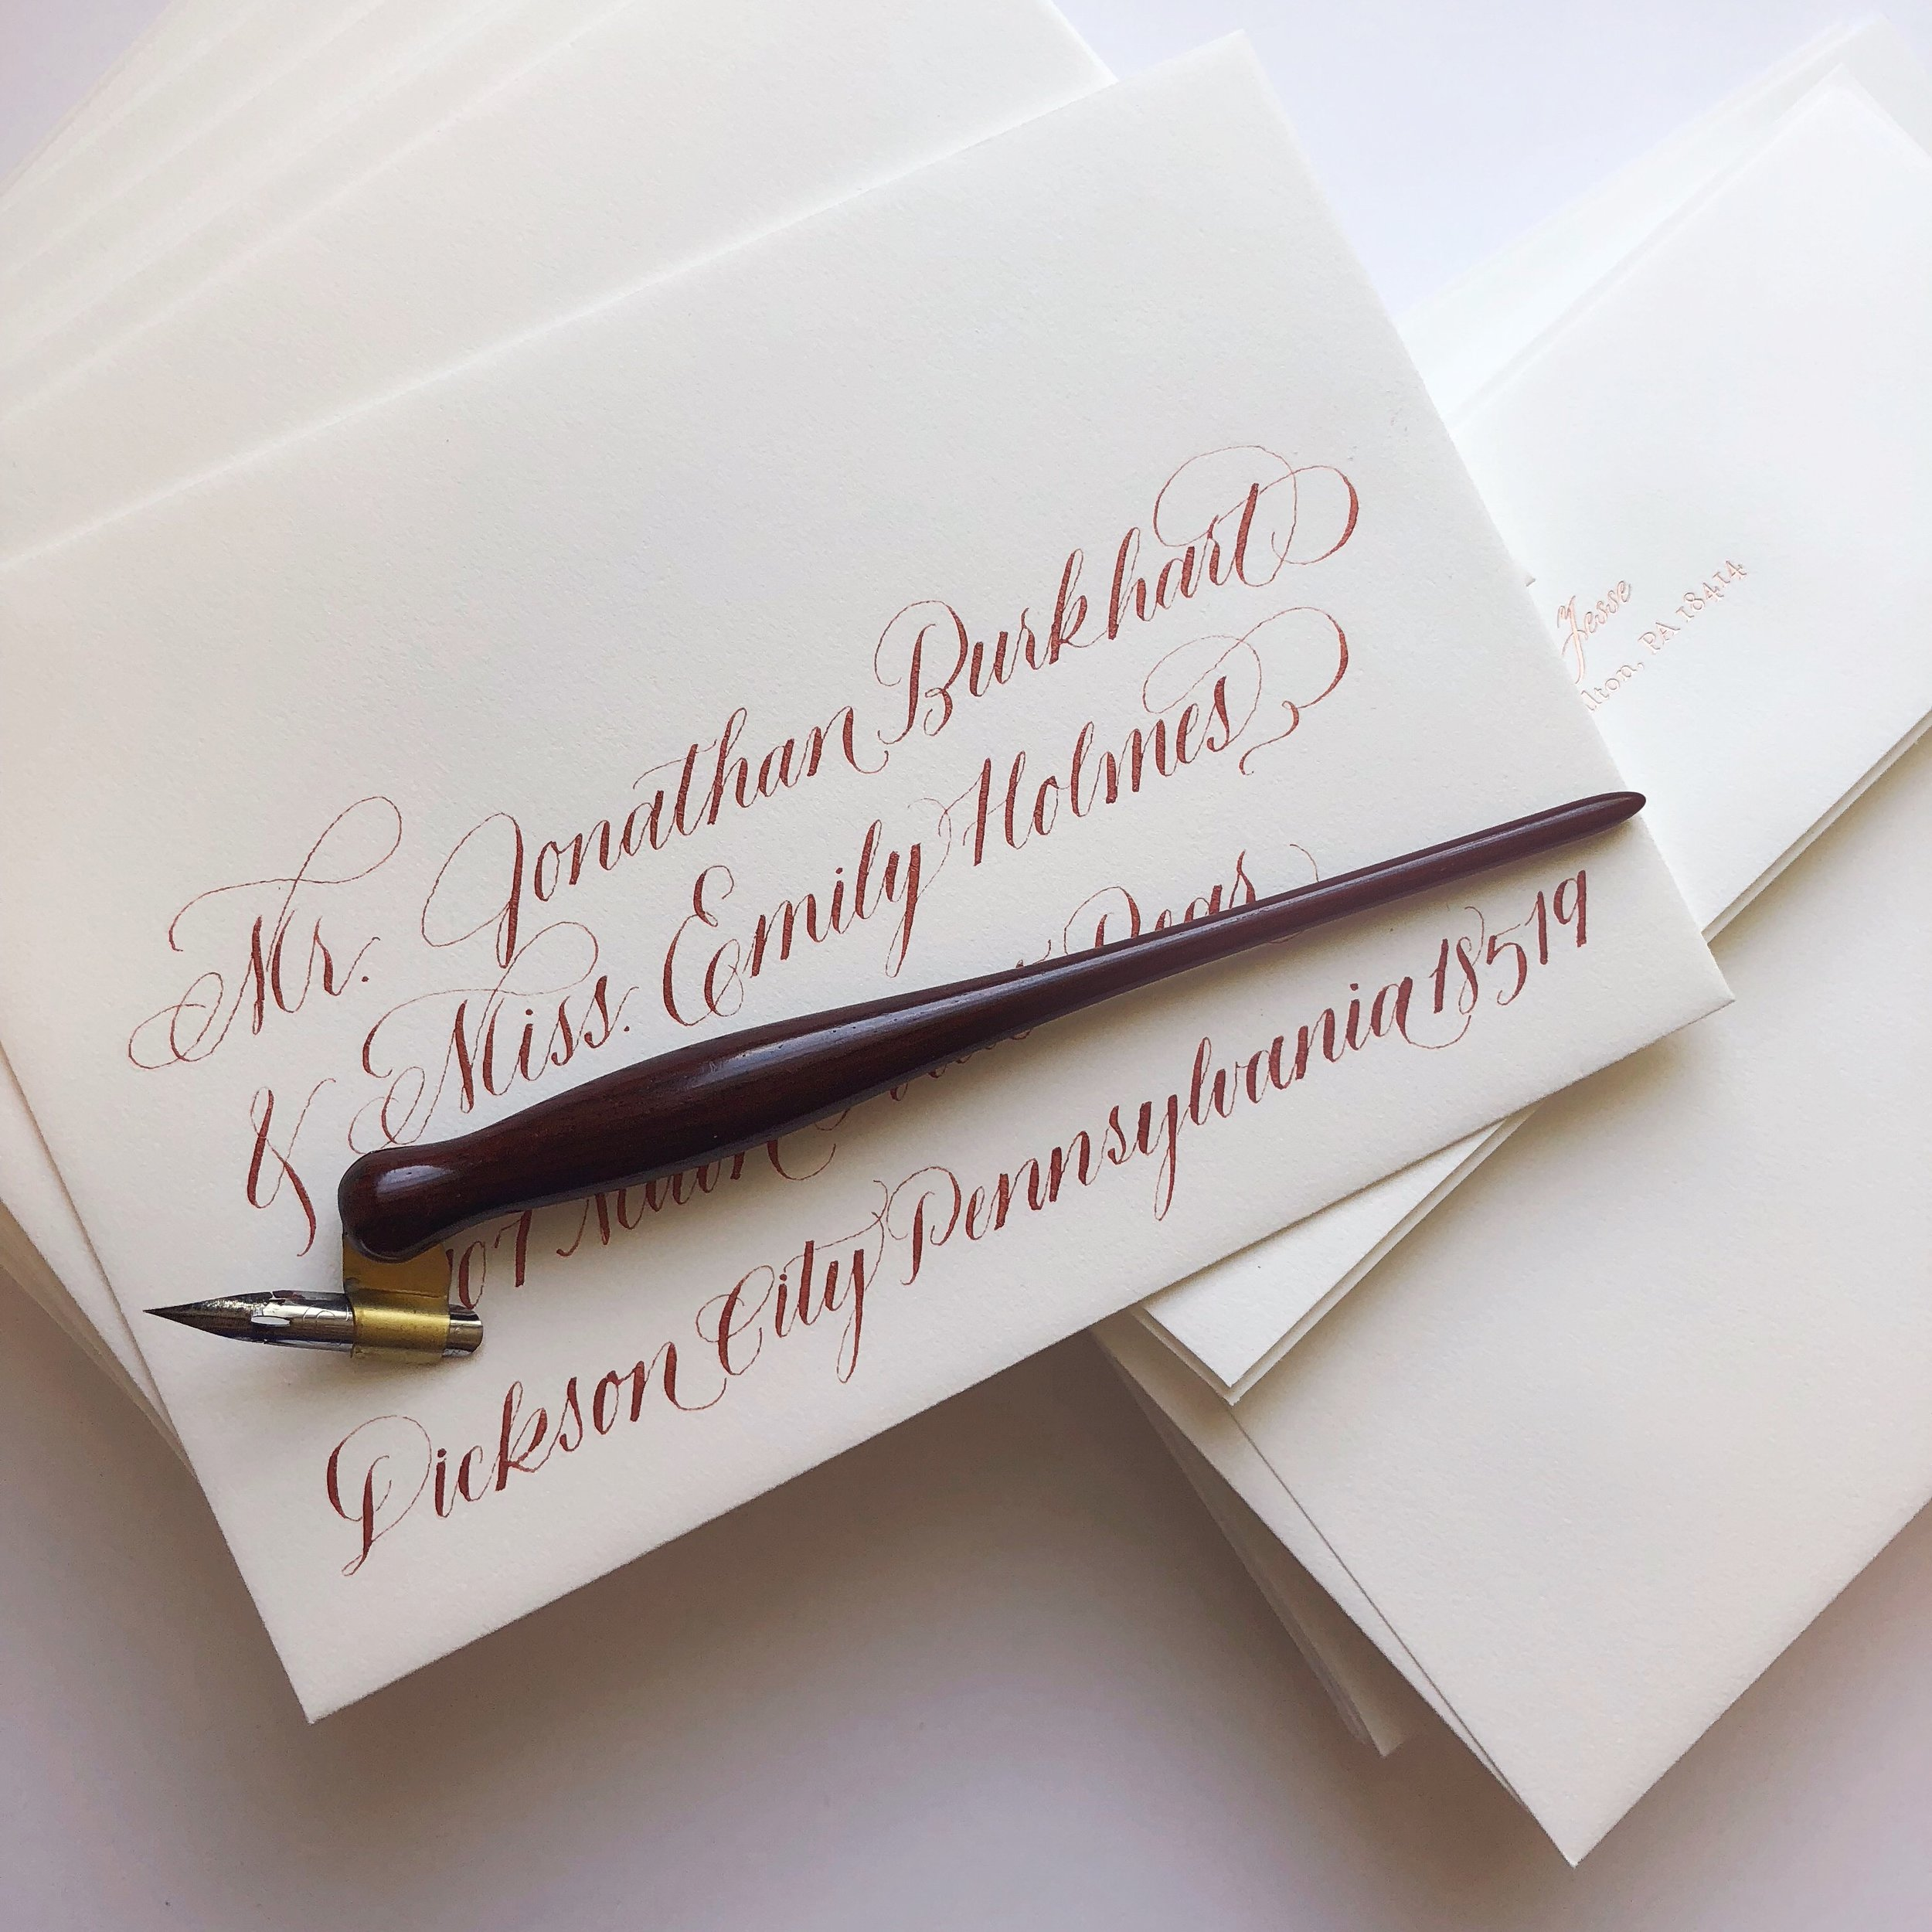 rose-gold-copperplate-calligraphy_Stonefawxstudios.jpg